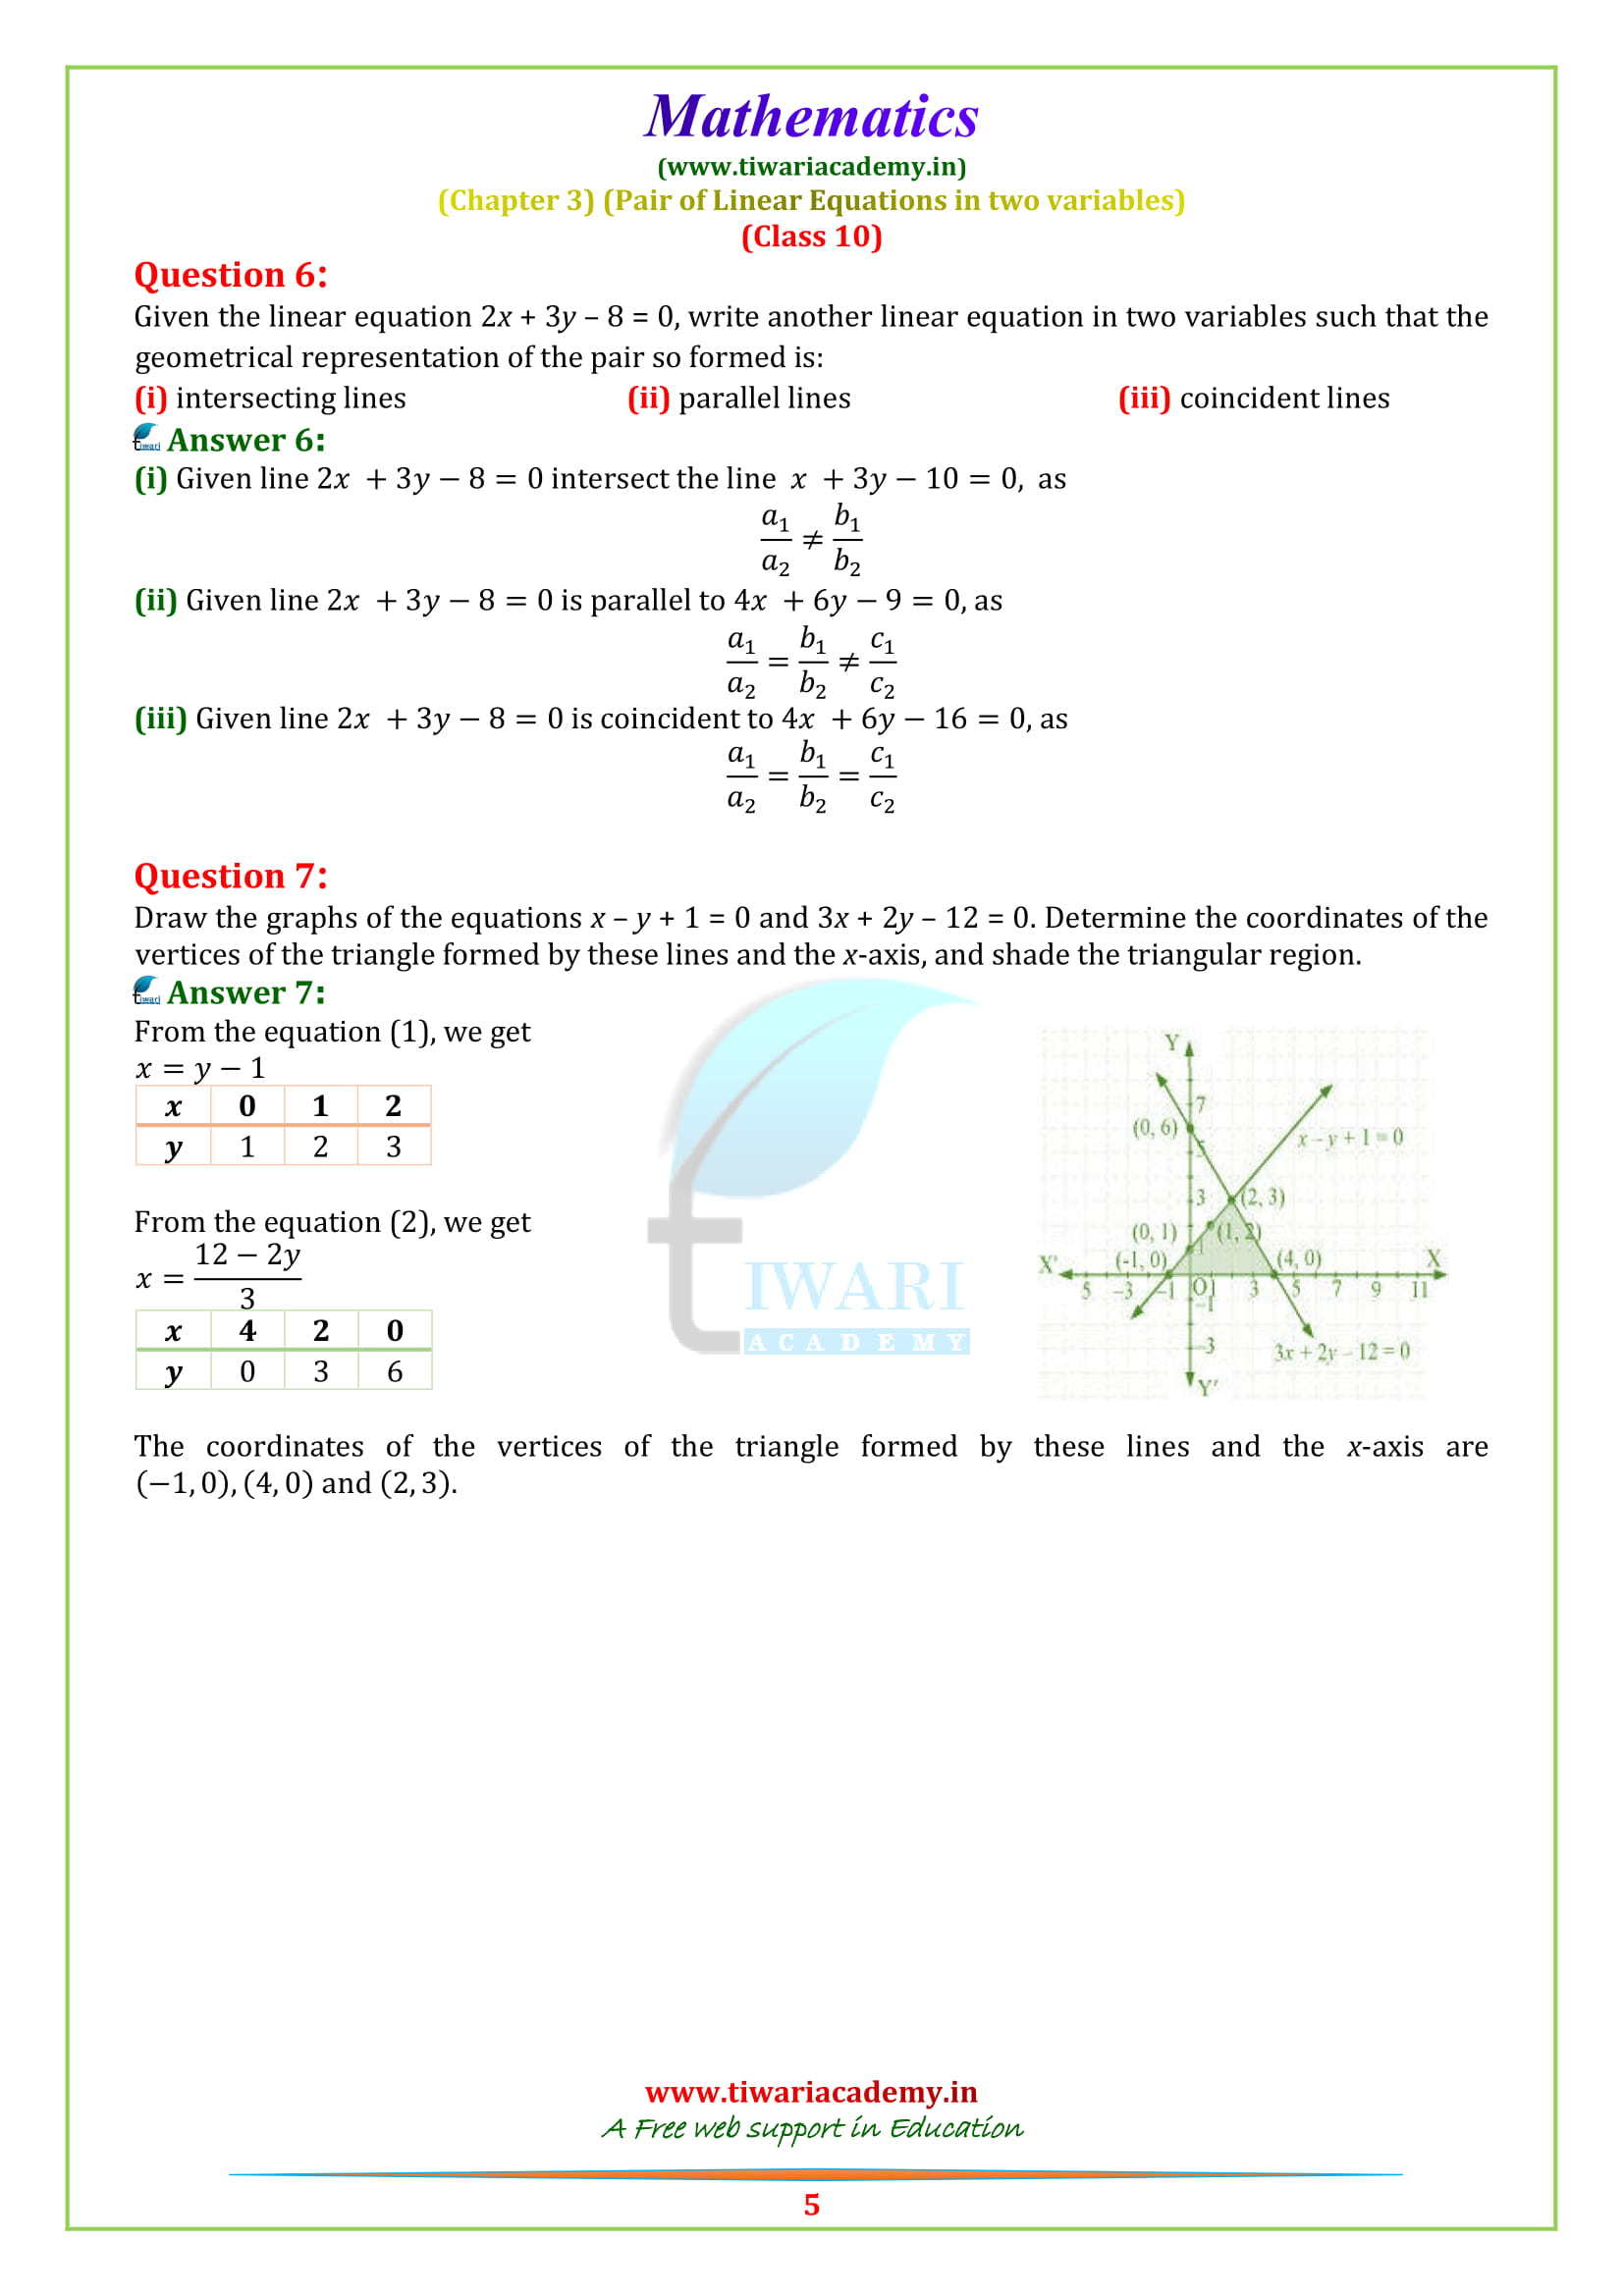 Class 10 Maths Chapter 3 Exercise 3.2 question 1, 2, 3, 4, 5, 6, 7